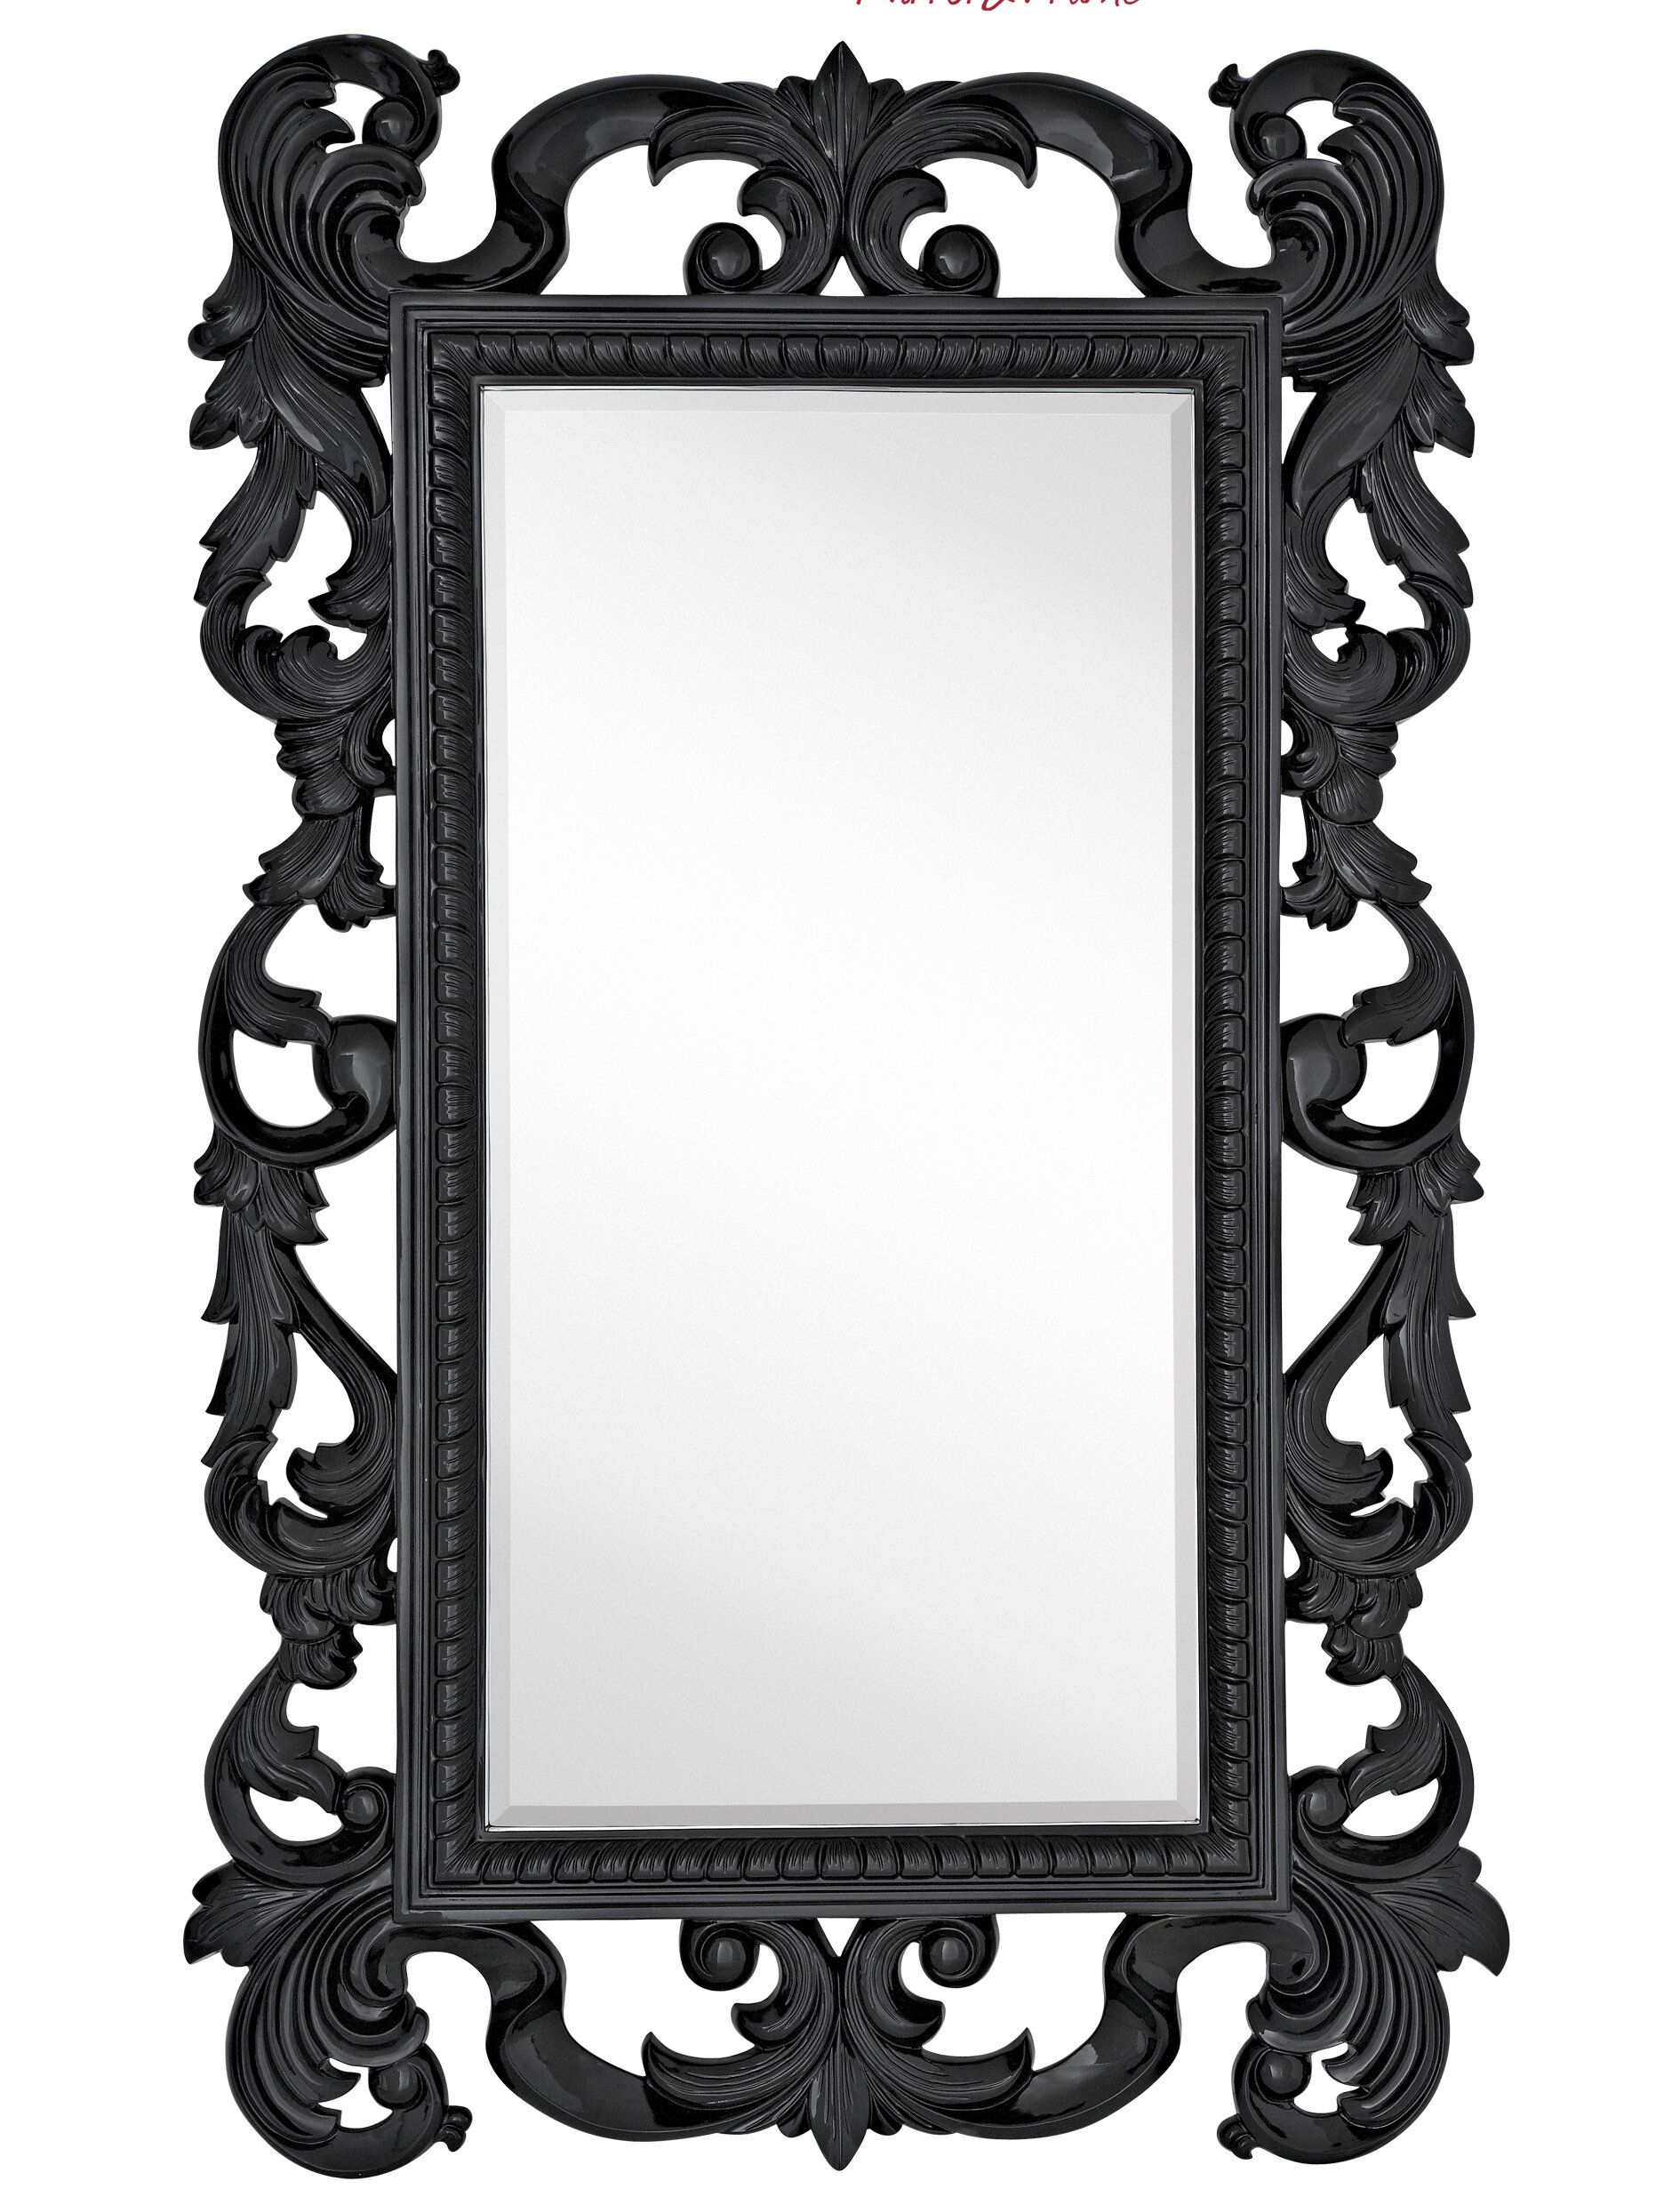 Majestic Mirror Large Rectangular Traditional Black Lacquer Beveled Glass  Antique Wall Mirror | Wayfair